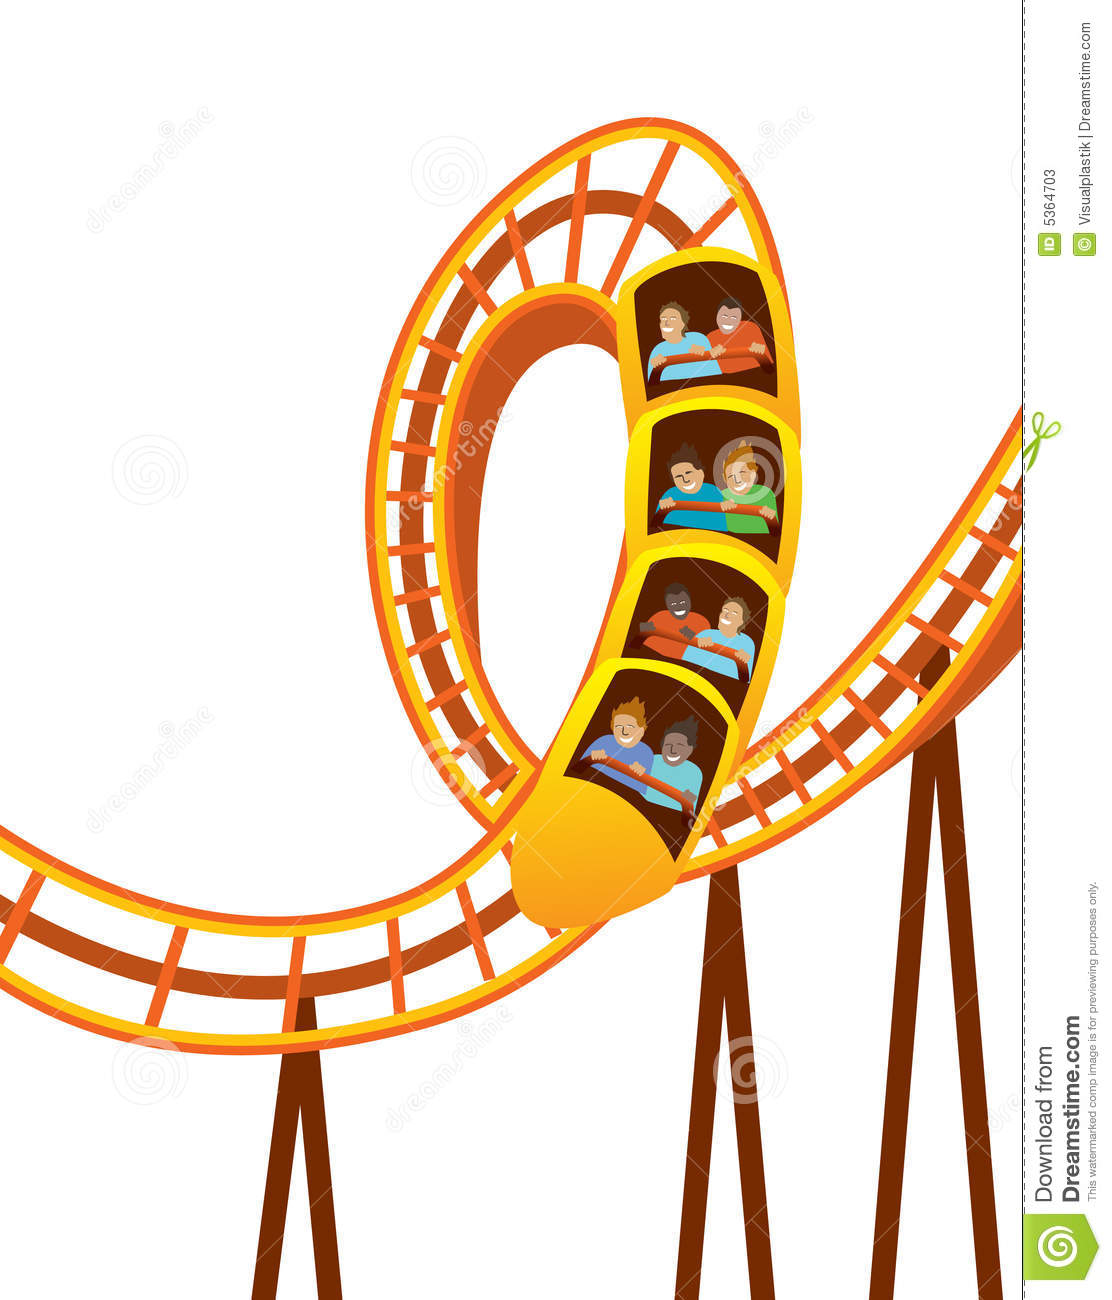 roller coaster clipart clipart suggest roller coaster clipart images roller coaster clipart png